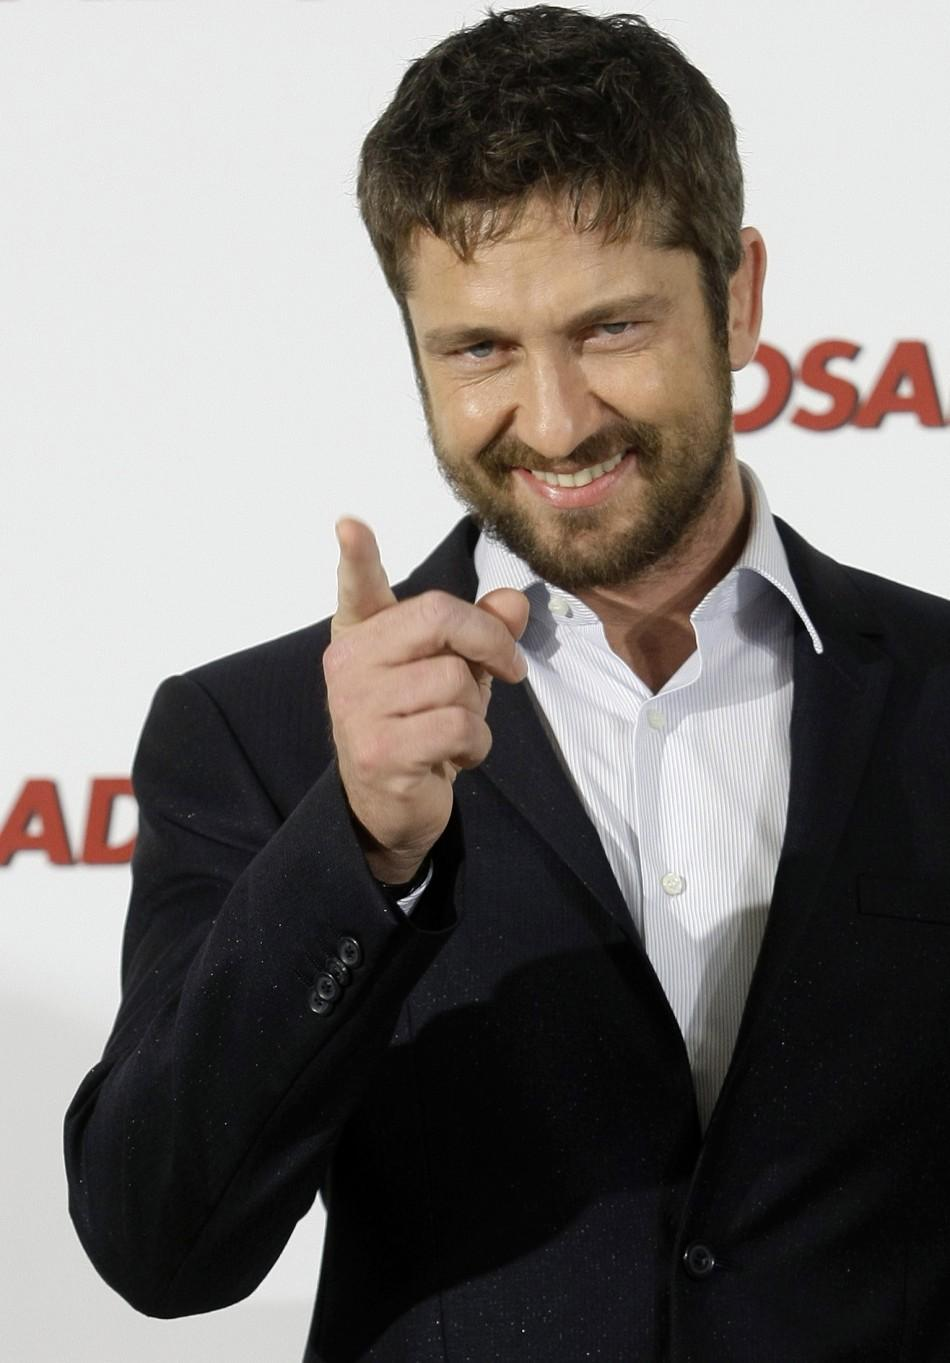 Actor Butler poses during a photocall to promote the movie The Bounty Hunter in Madrid